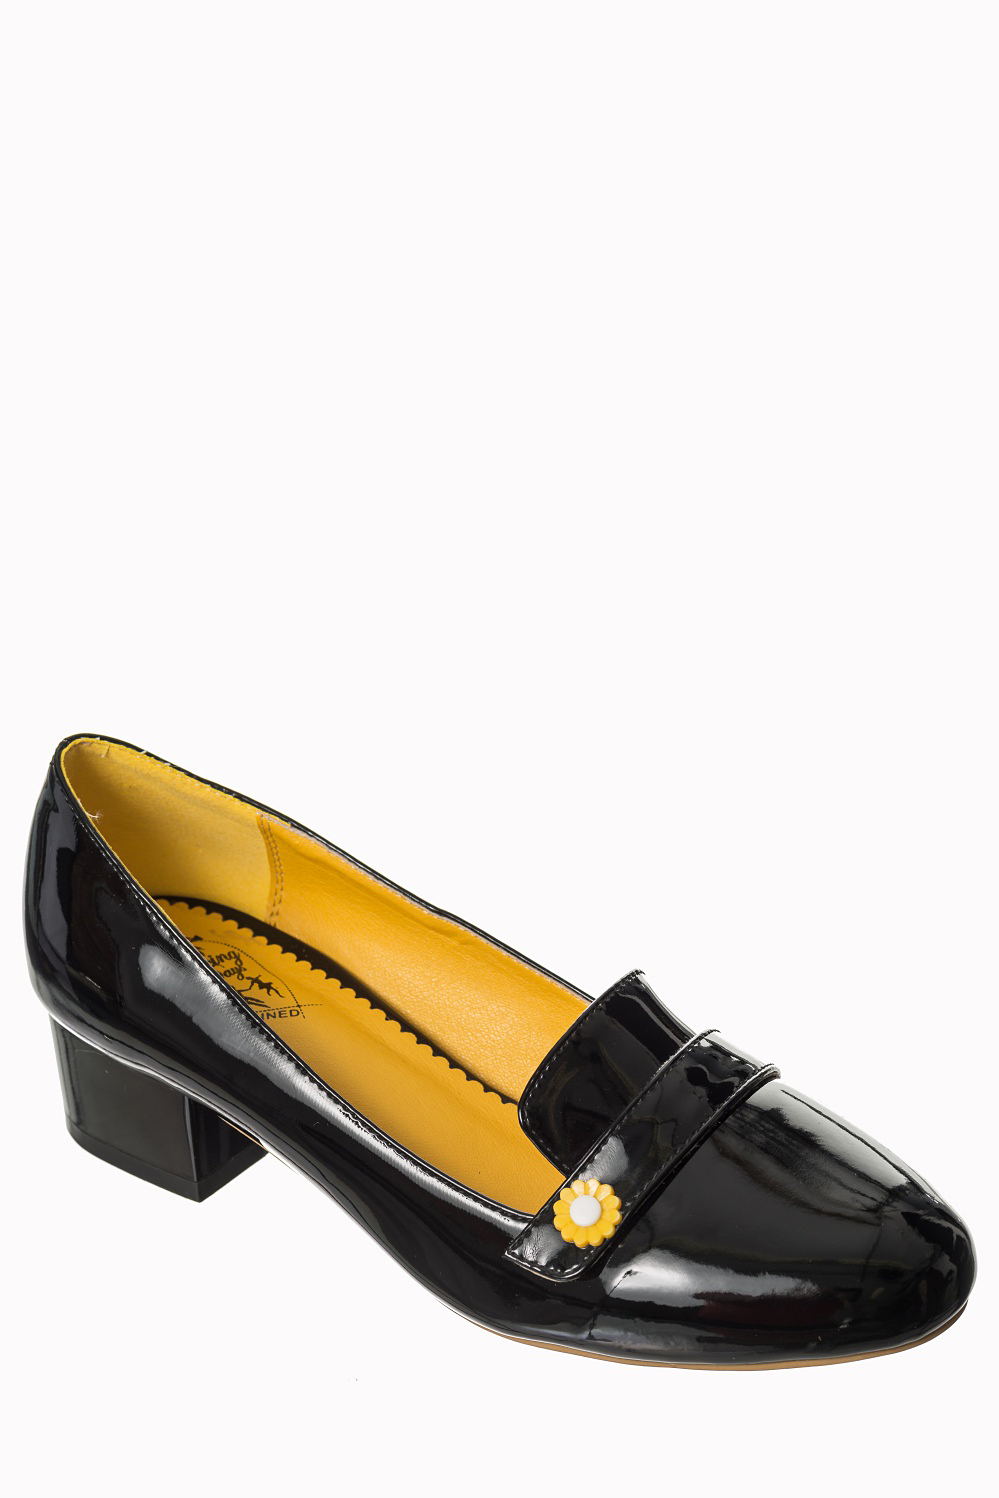 Dancing Days Little Wonder 60s Black Loafer Shoes